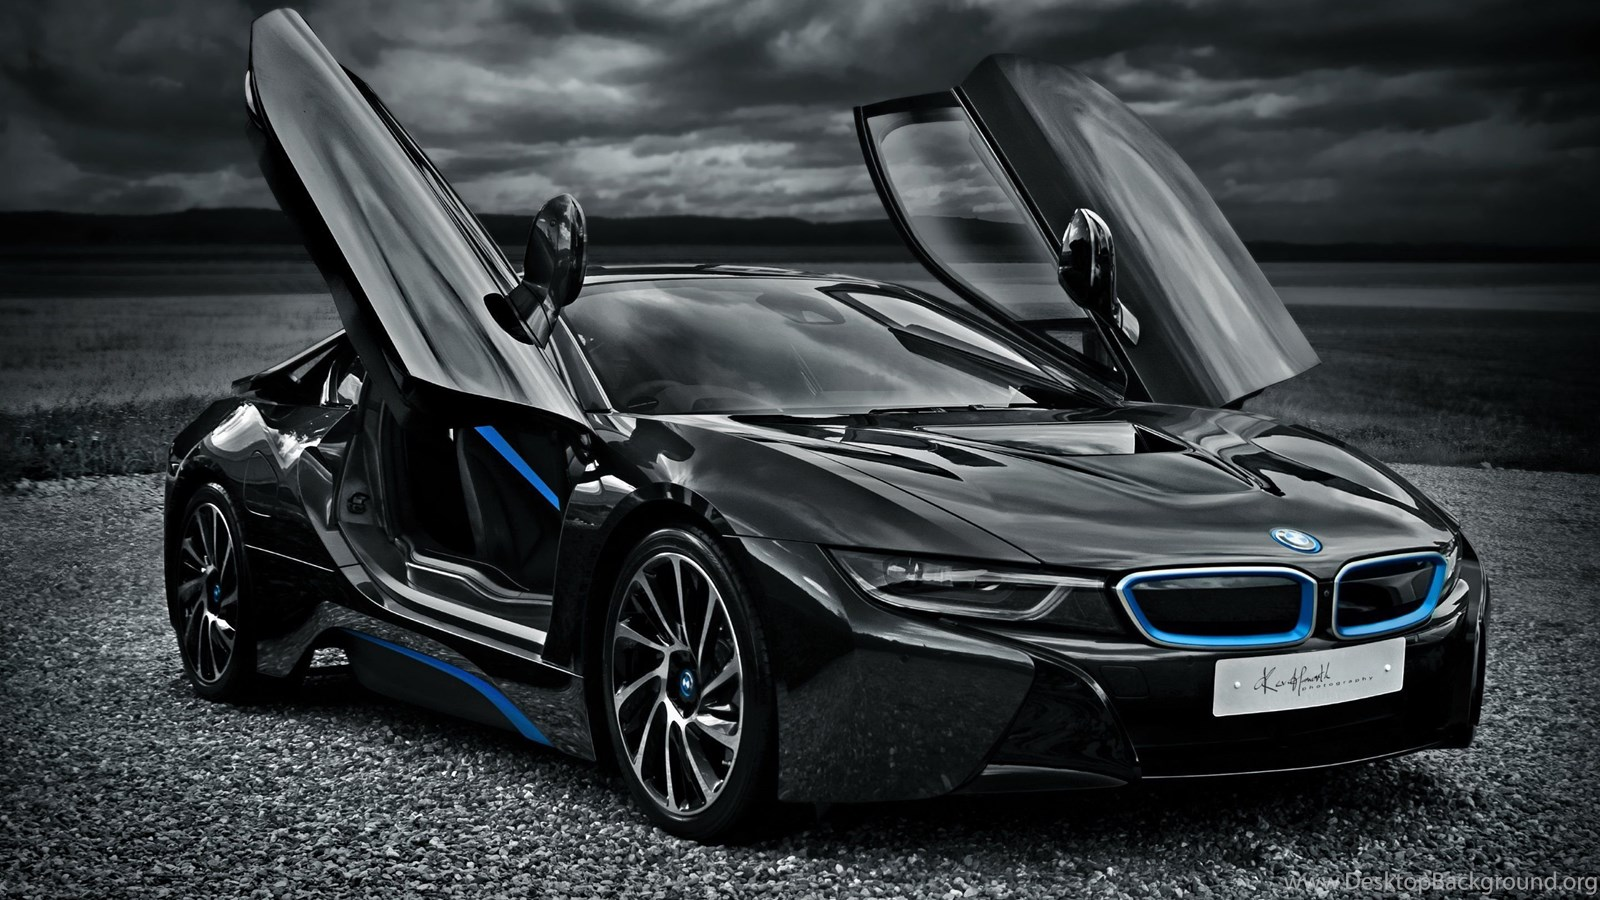 Future Electric Car Bmw I8 Wallpapers Hd Wallpapers Desktop